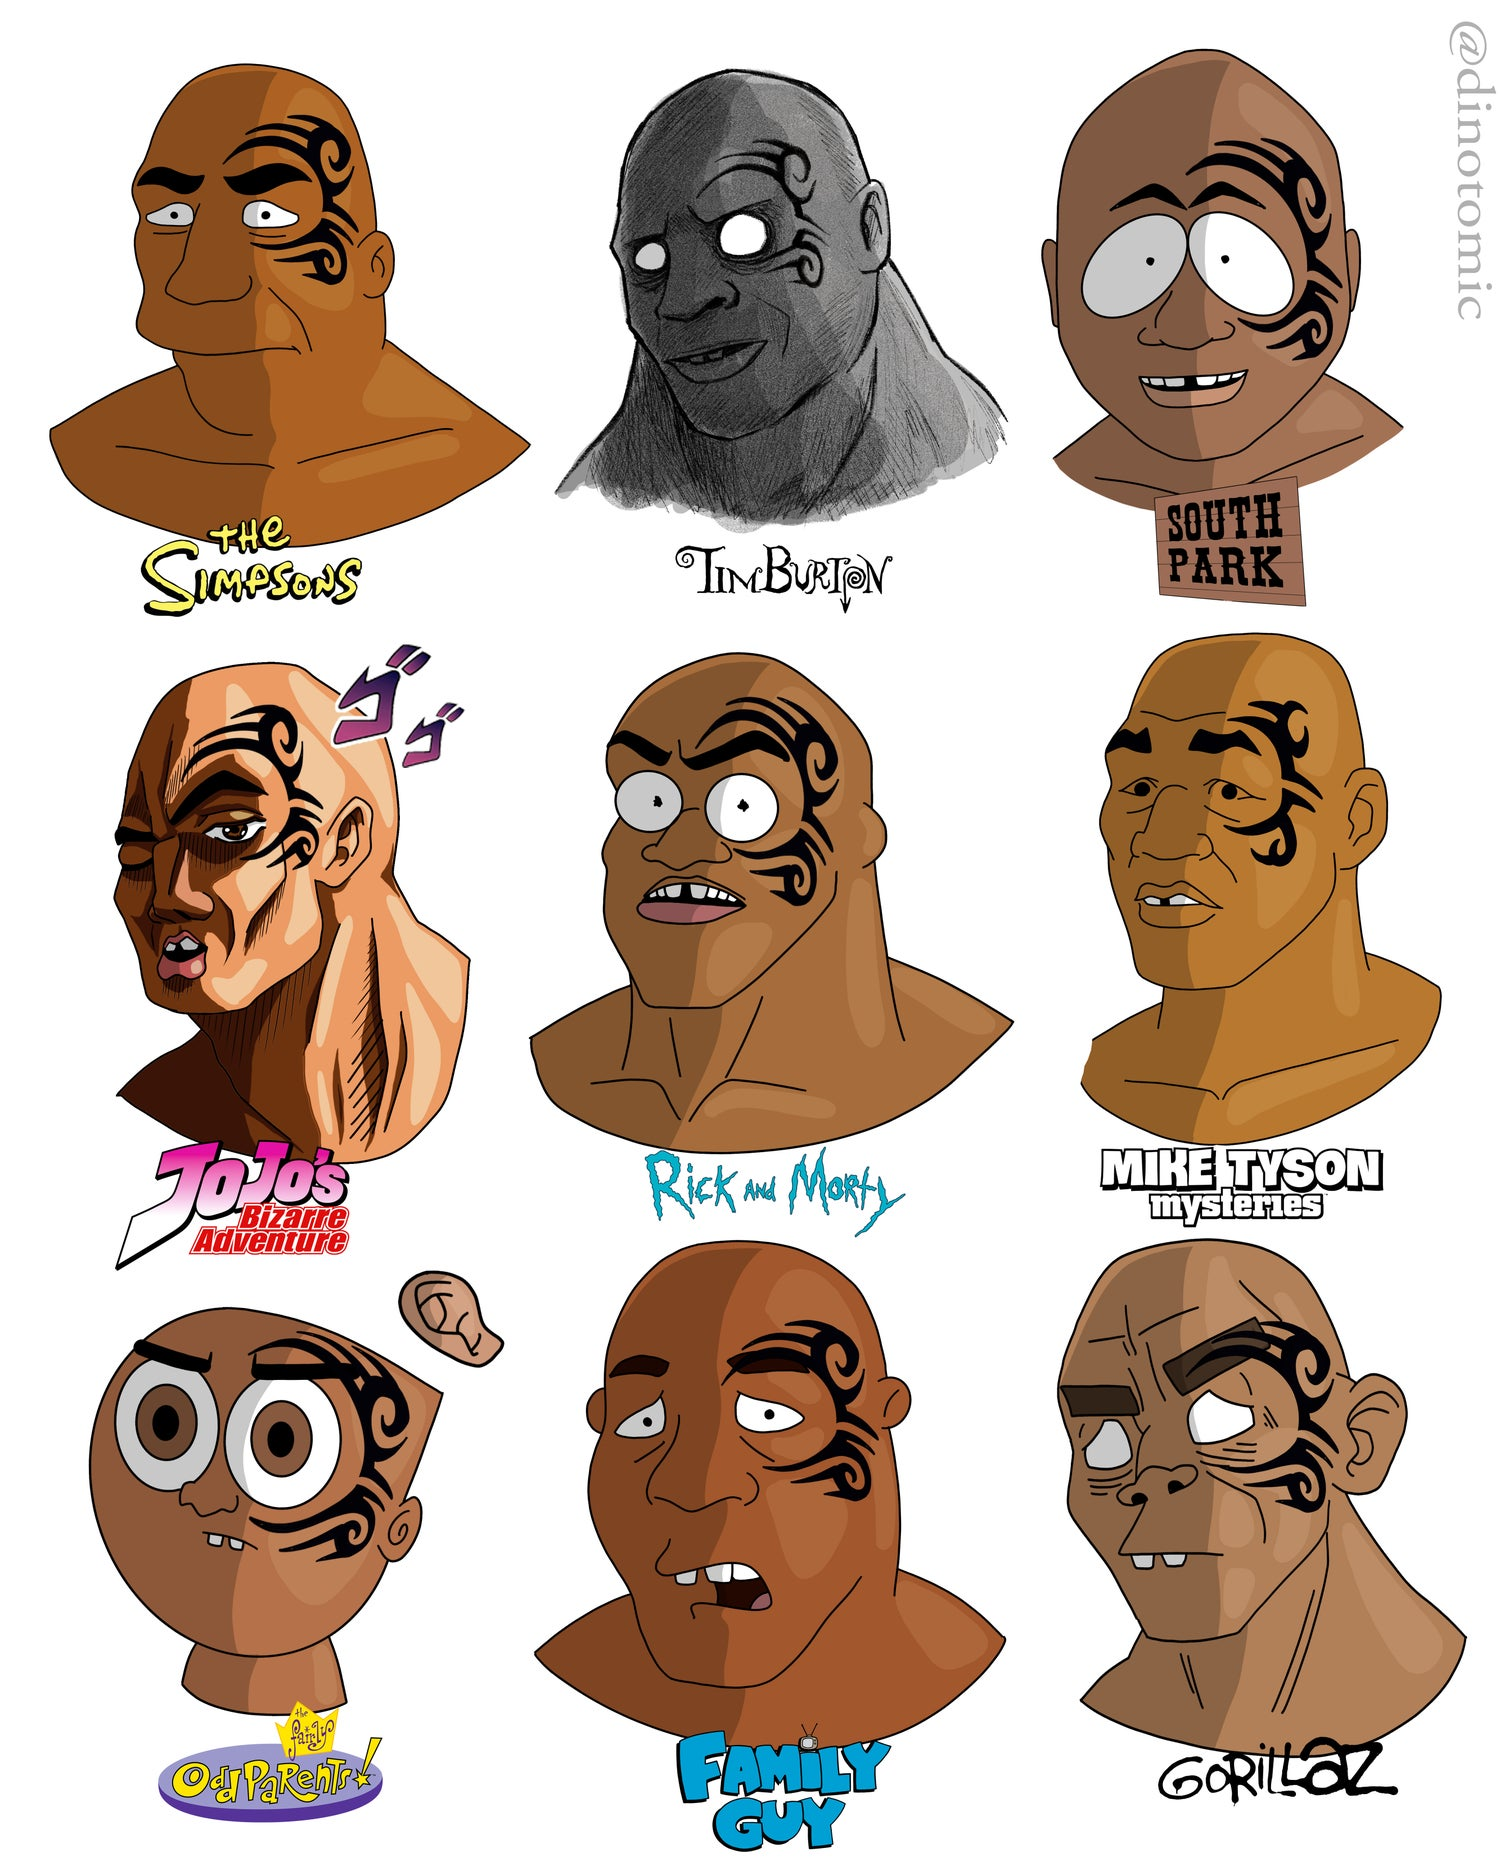 Image of #184 Mike Tyson in different styles